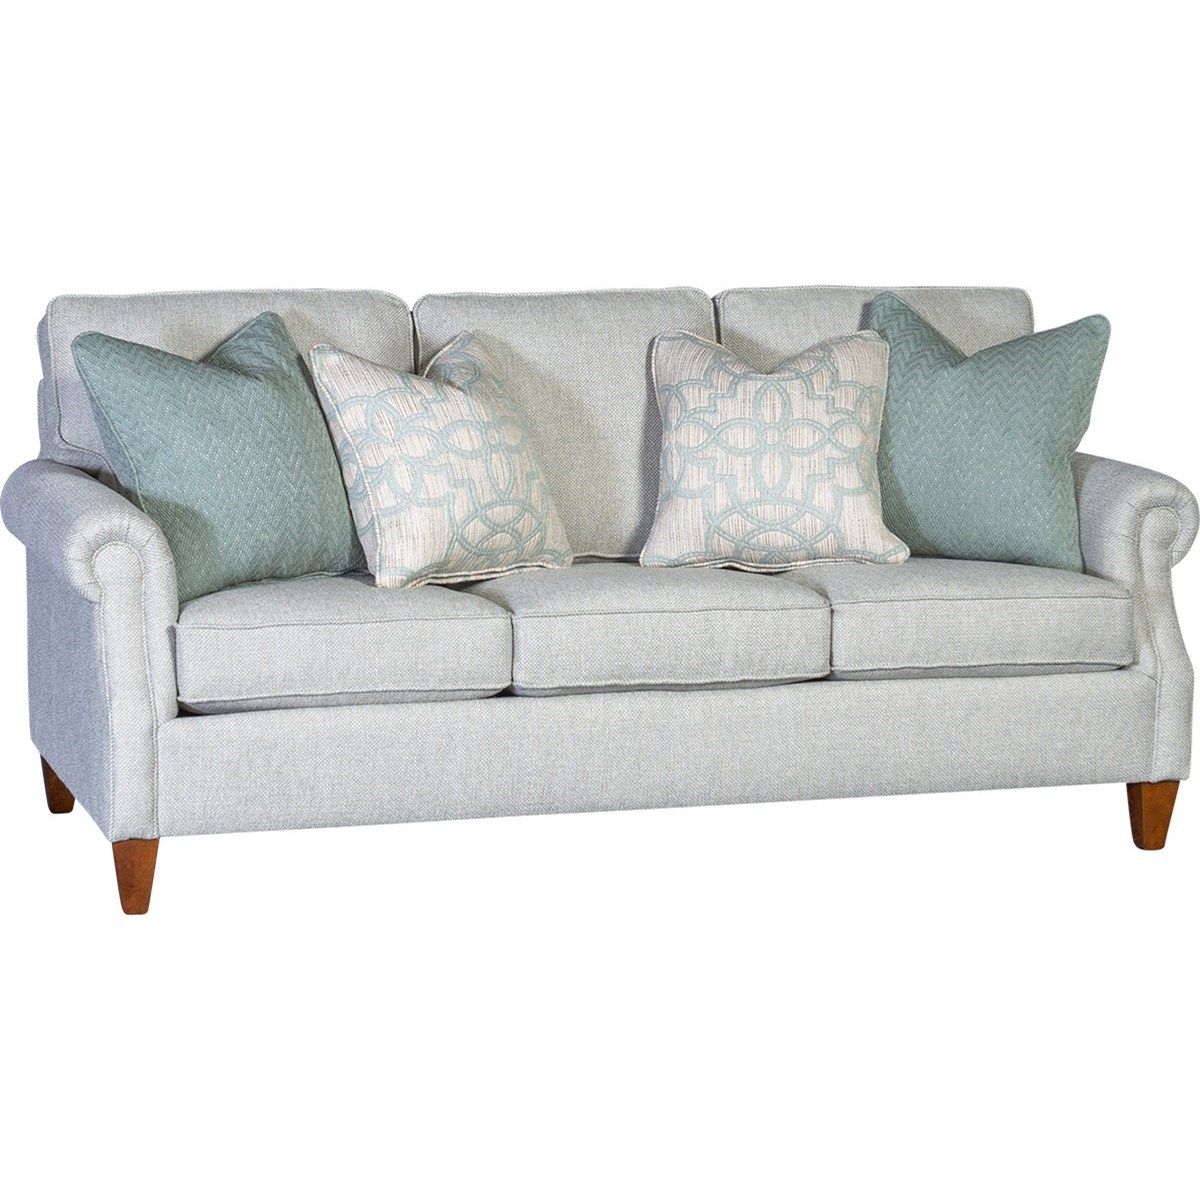 3311 Transitional Sofa by Mayo at Wilson's Furniture